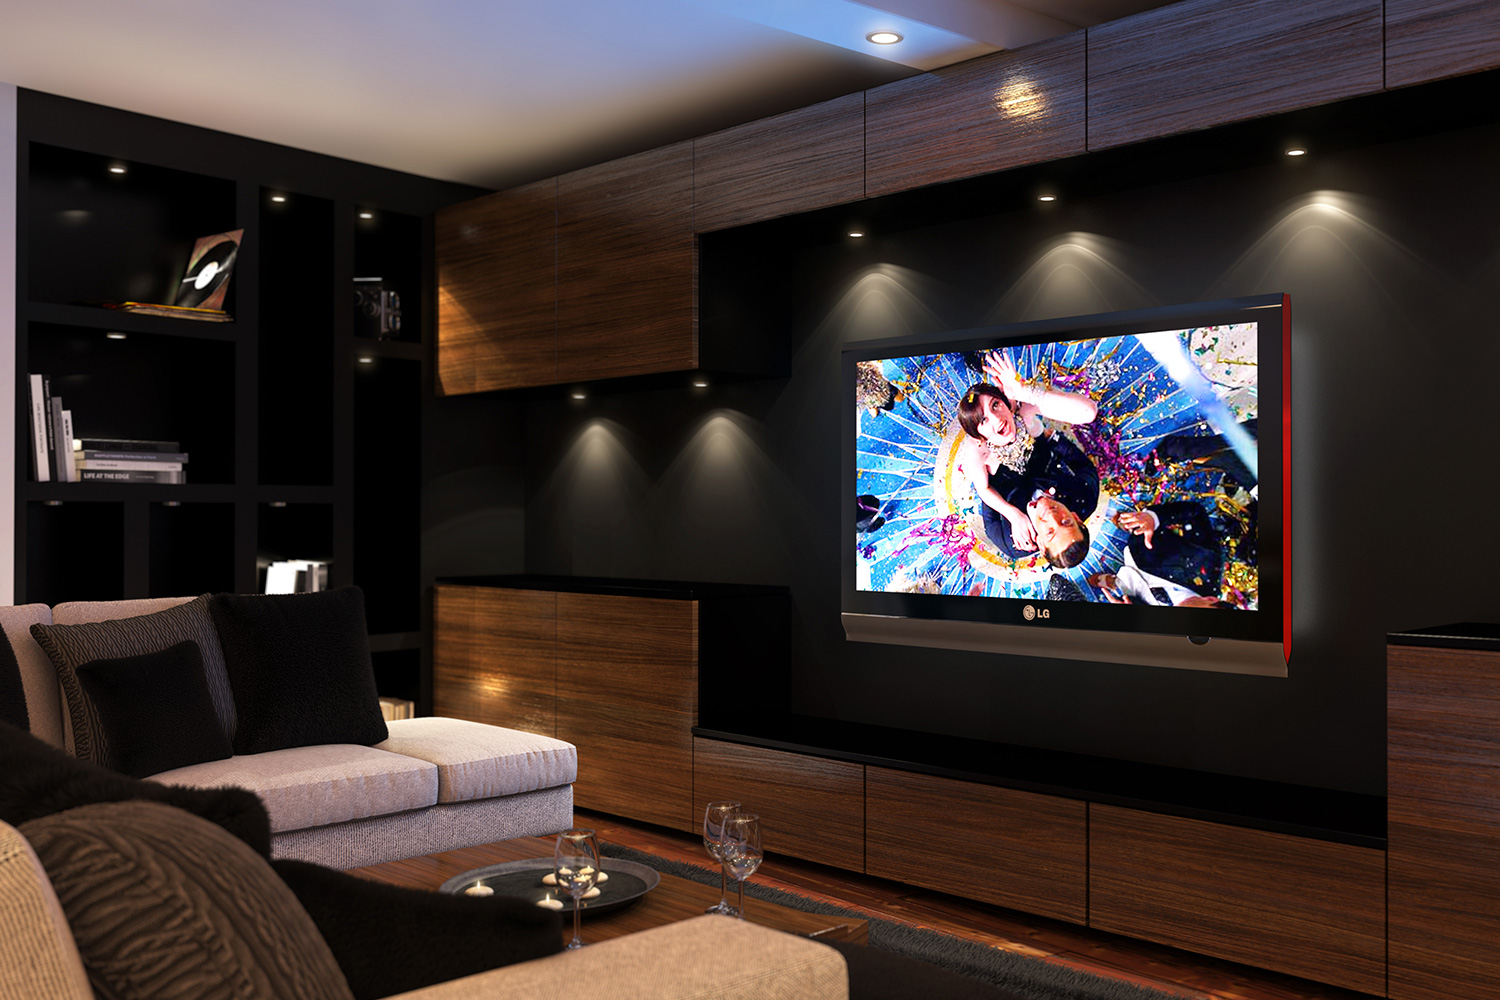 CGI visualisation Lounge with HD TV on wall, sofa, table and timber finish